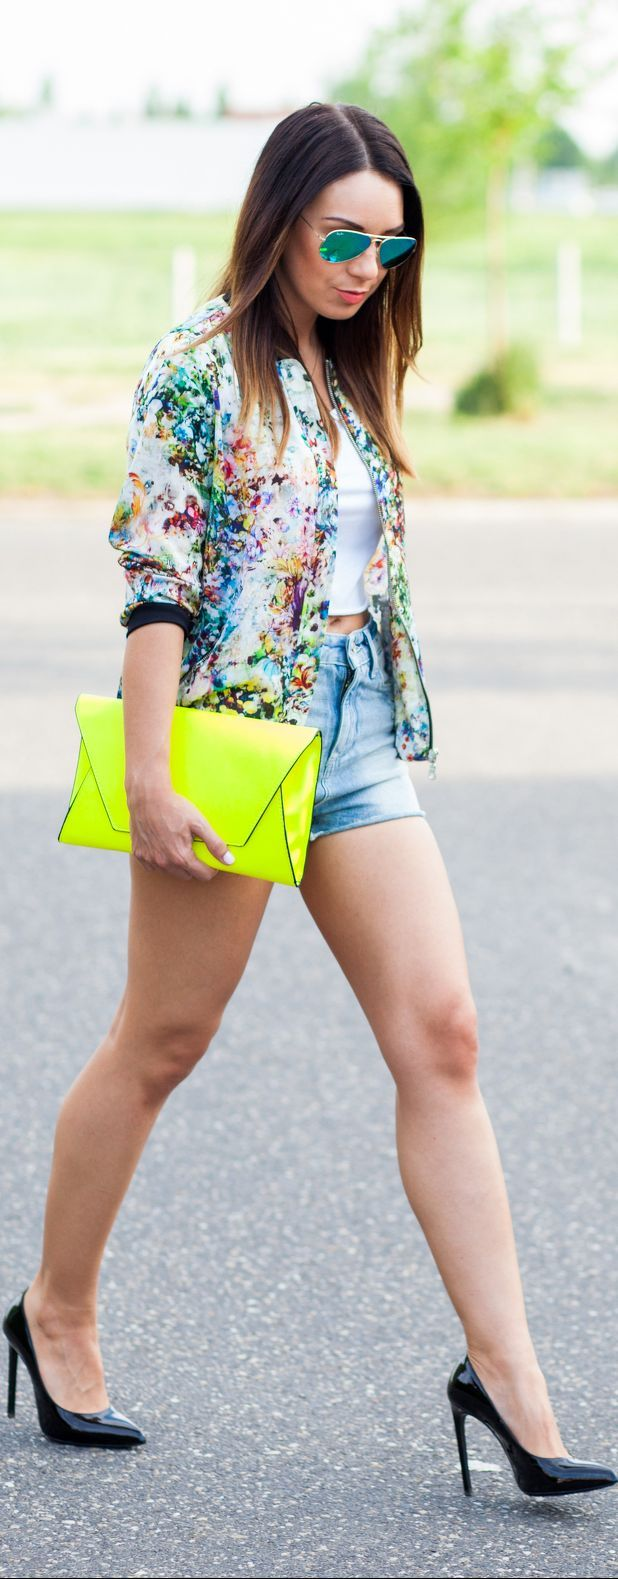 Love the jacket and the neon purse, would match more with jeans not shorts though. #fashion #clutch #heels